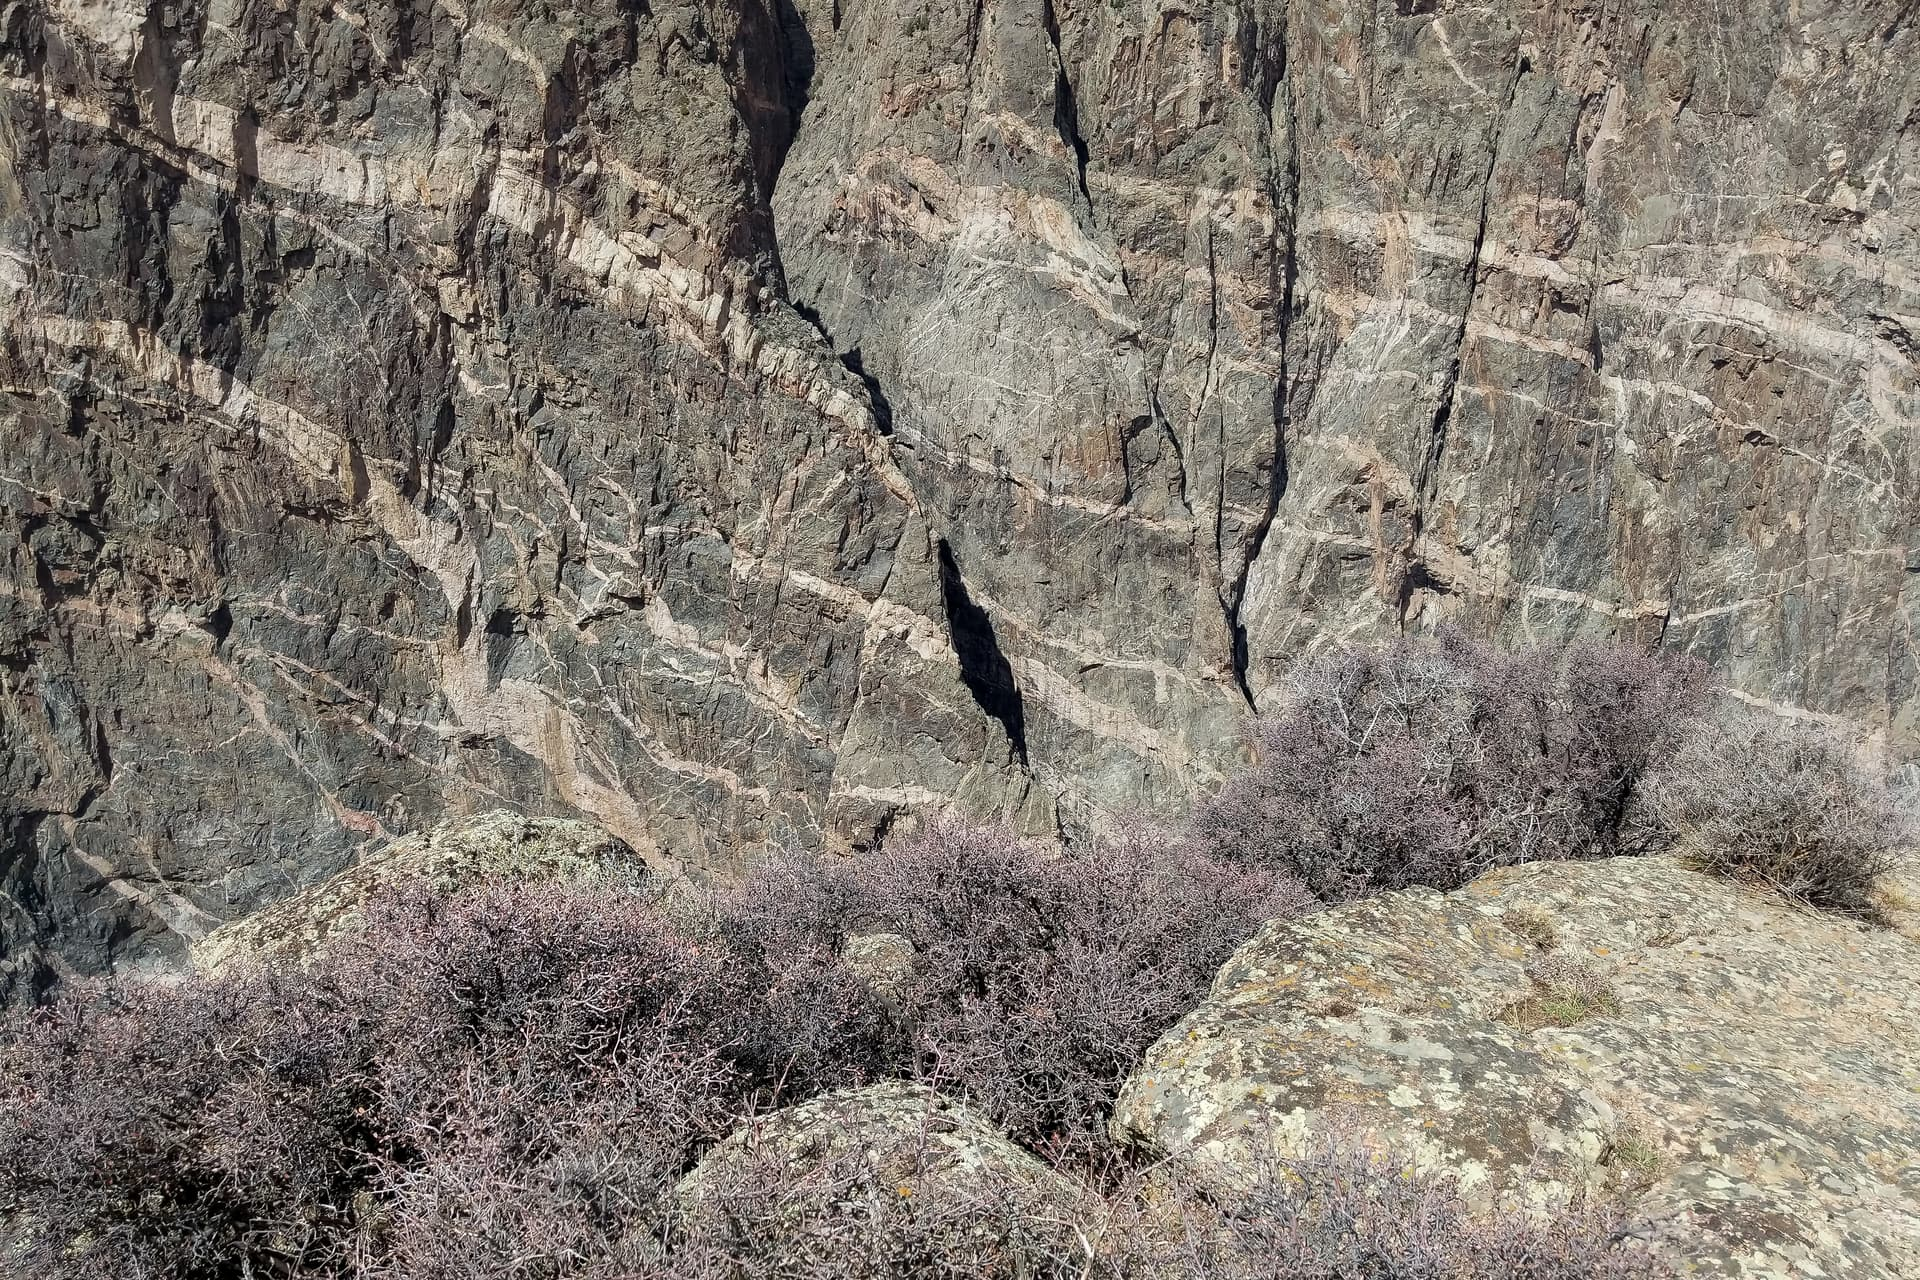 The wall of the deep purple rock of the Black Canyon of the Gunnison, shot through with intrusions of white granite. In the foreground is a row of low desert bushes covered in soft pink buds.